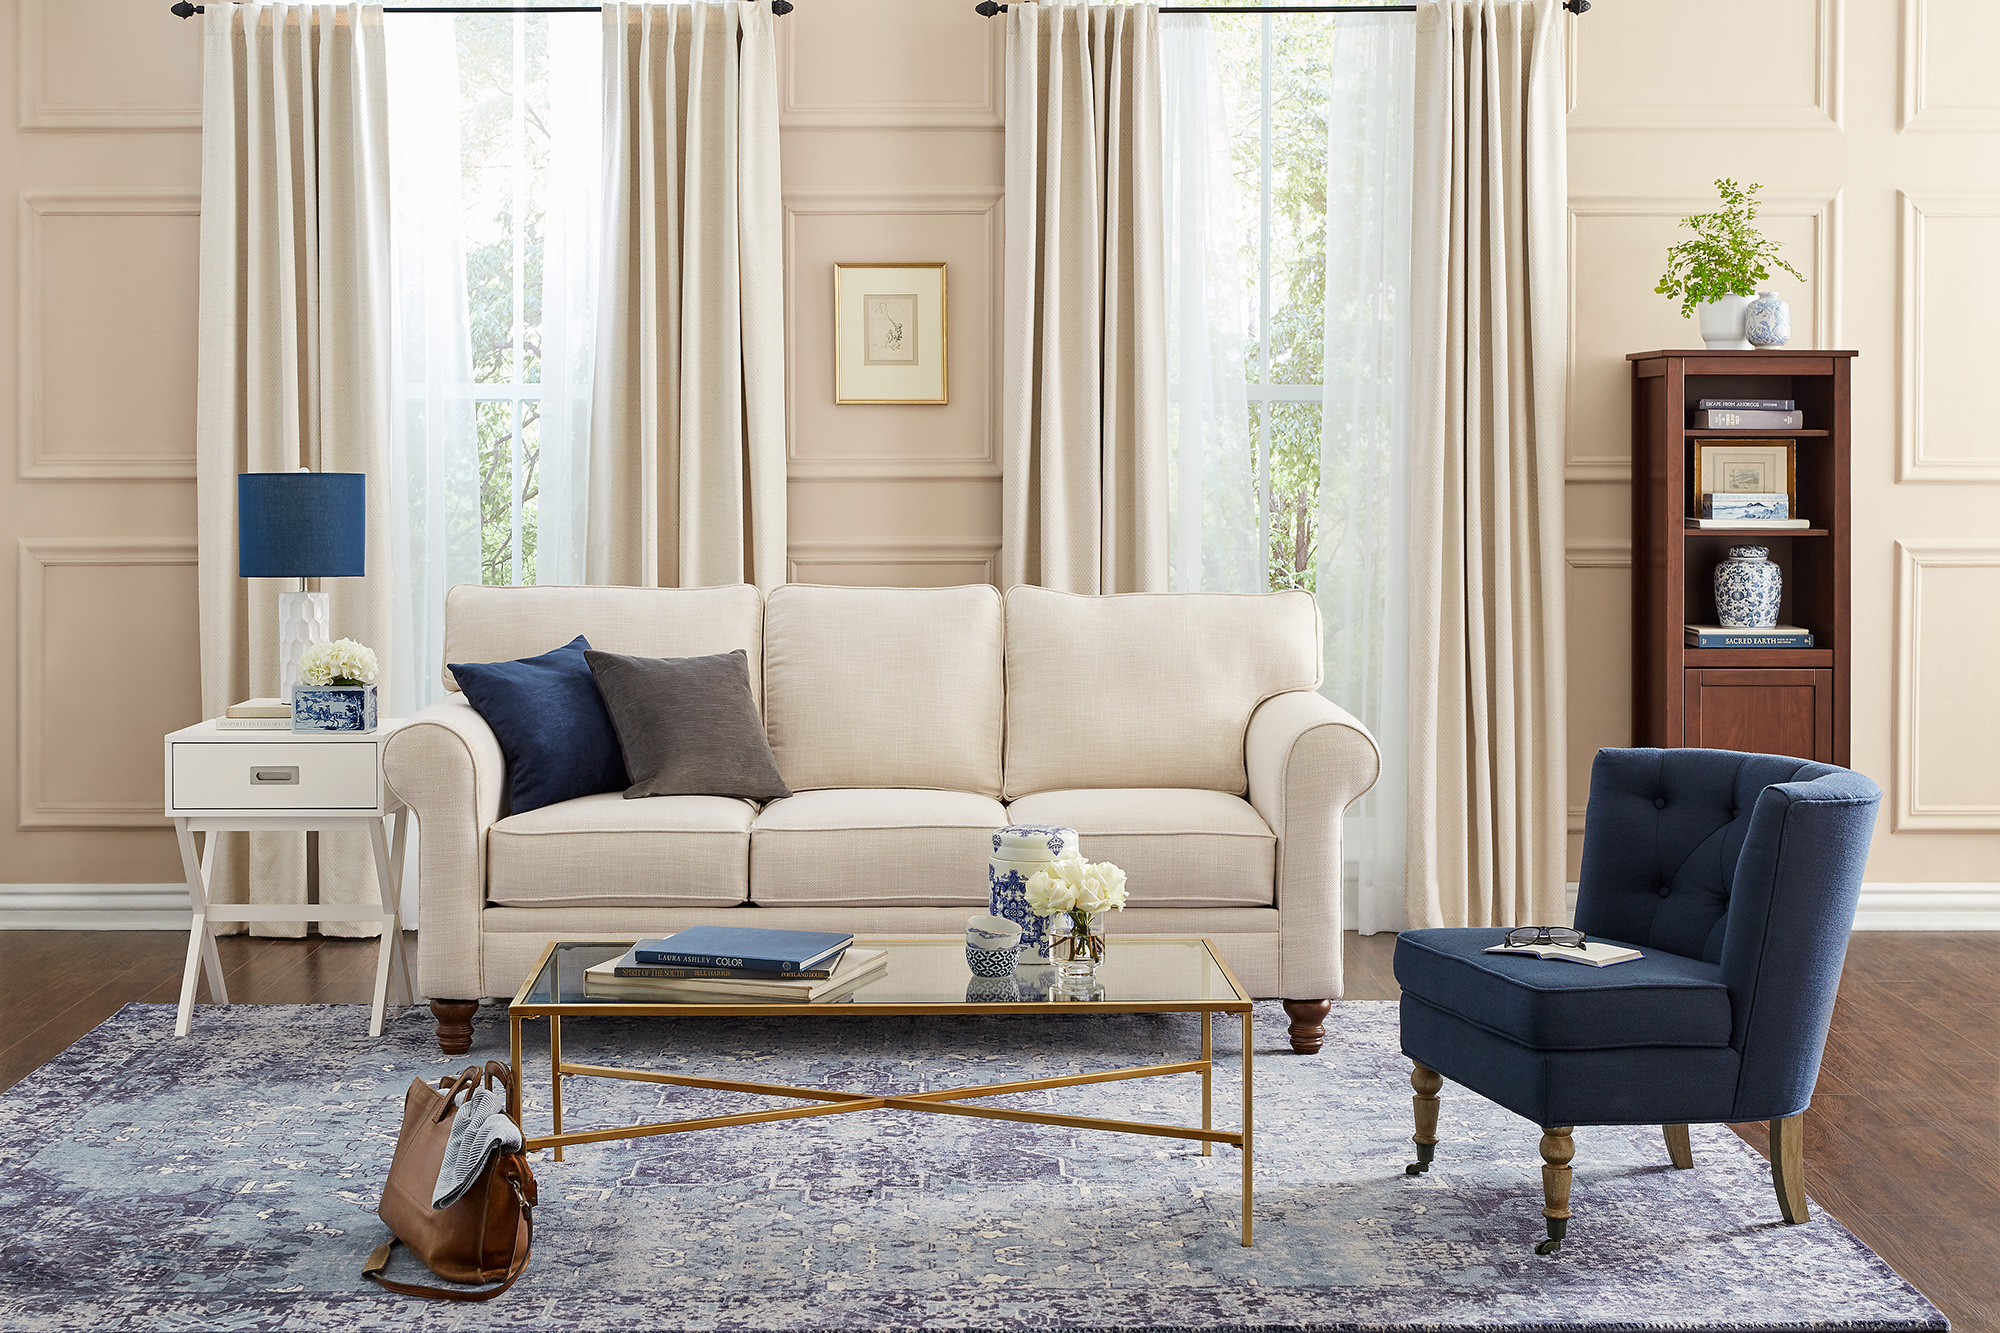 happy holidays off welker utterly versatile coffee table ravenna home living knurl nesting accent tables set two launches its own furnishings collection take peek the affordable